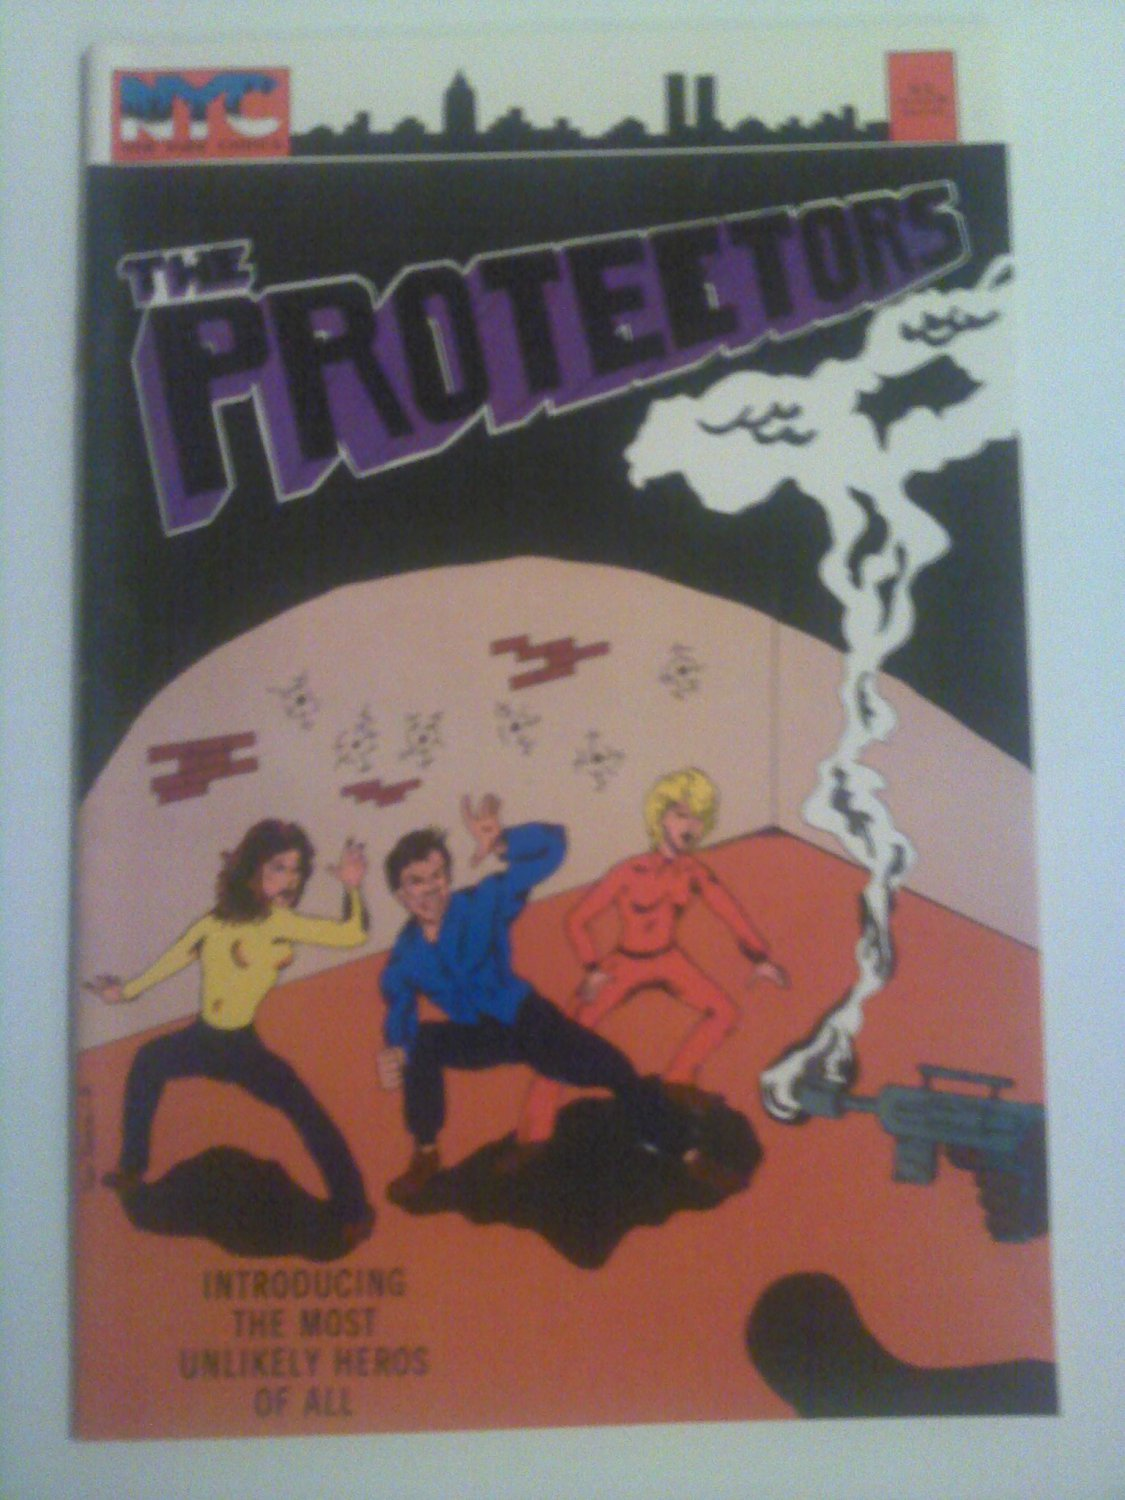 The Protectors #1 1980 NYC Comics Introducing the most Unlikely Heroes of All